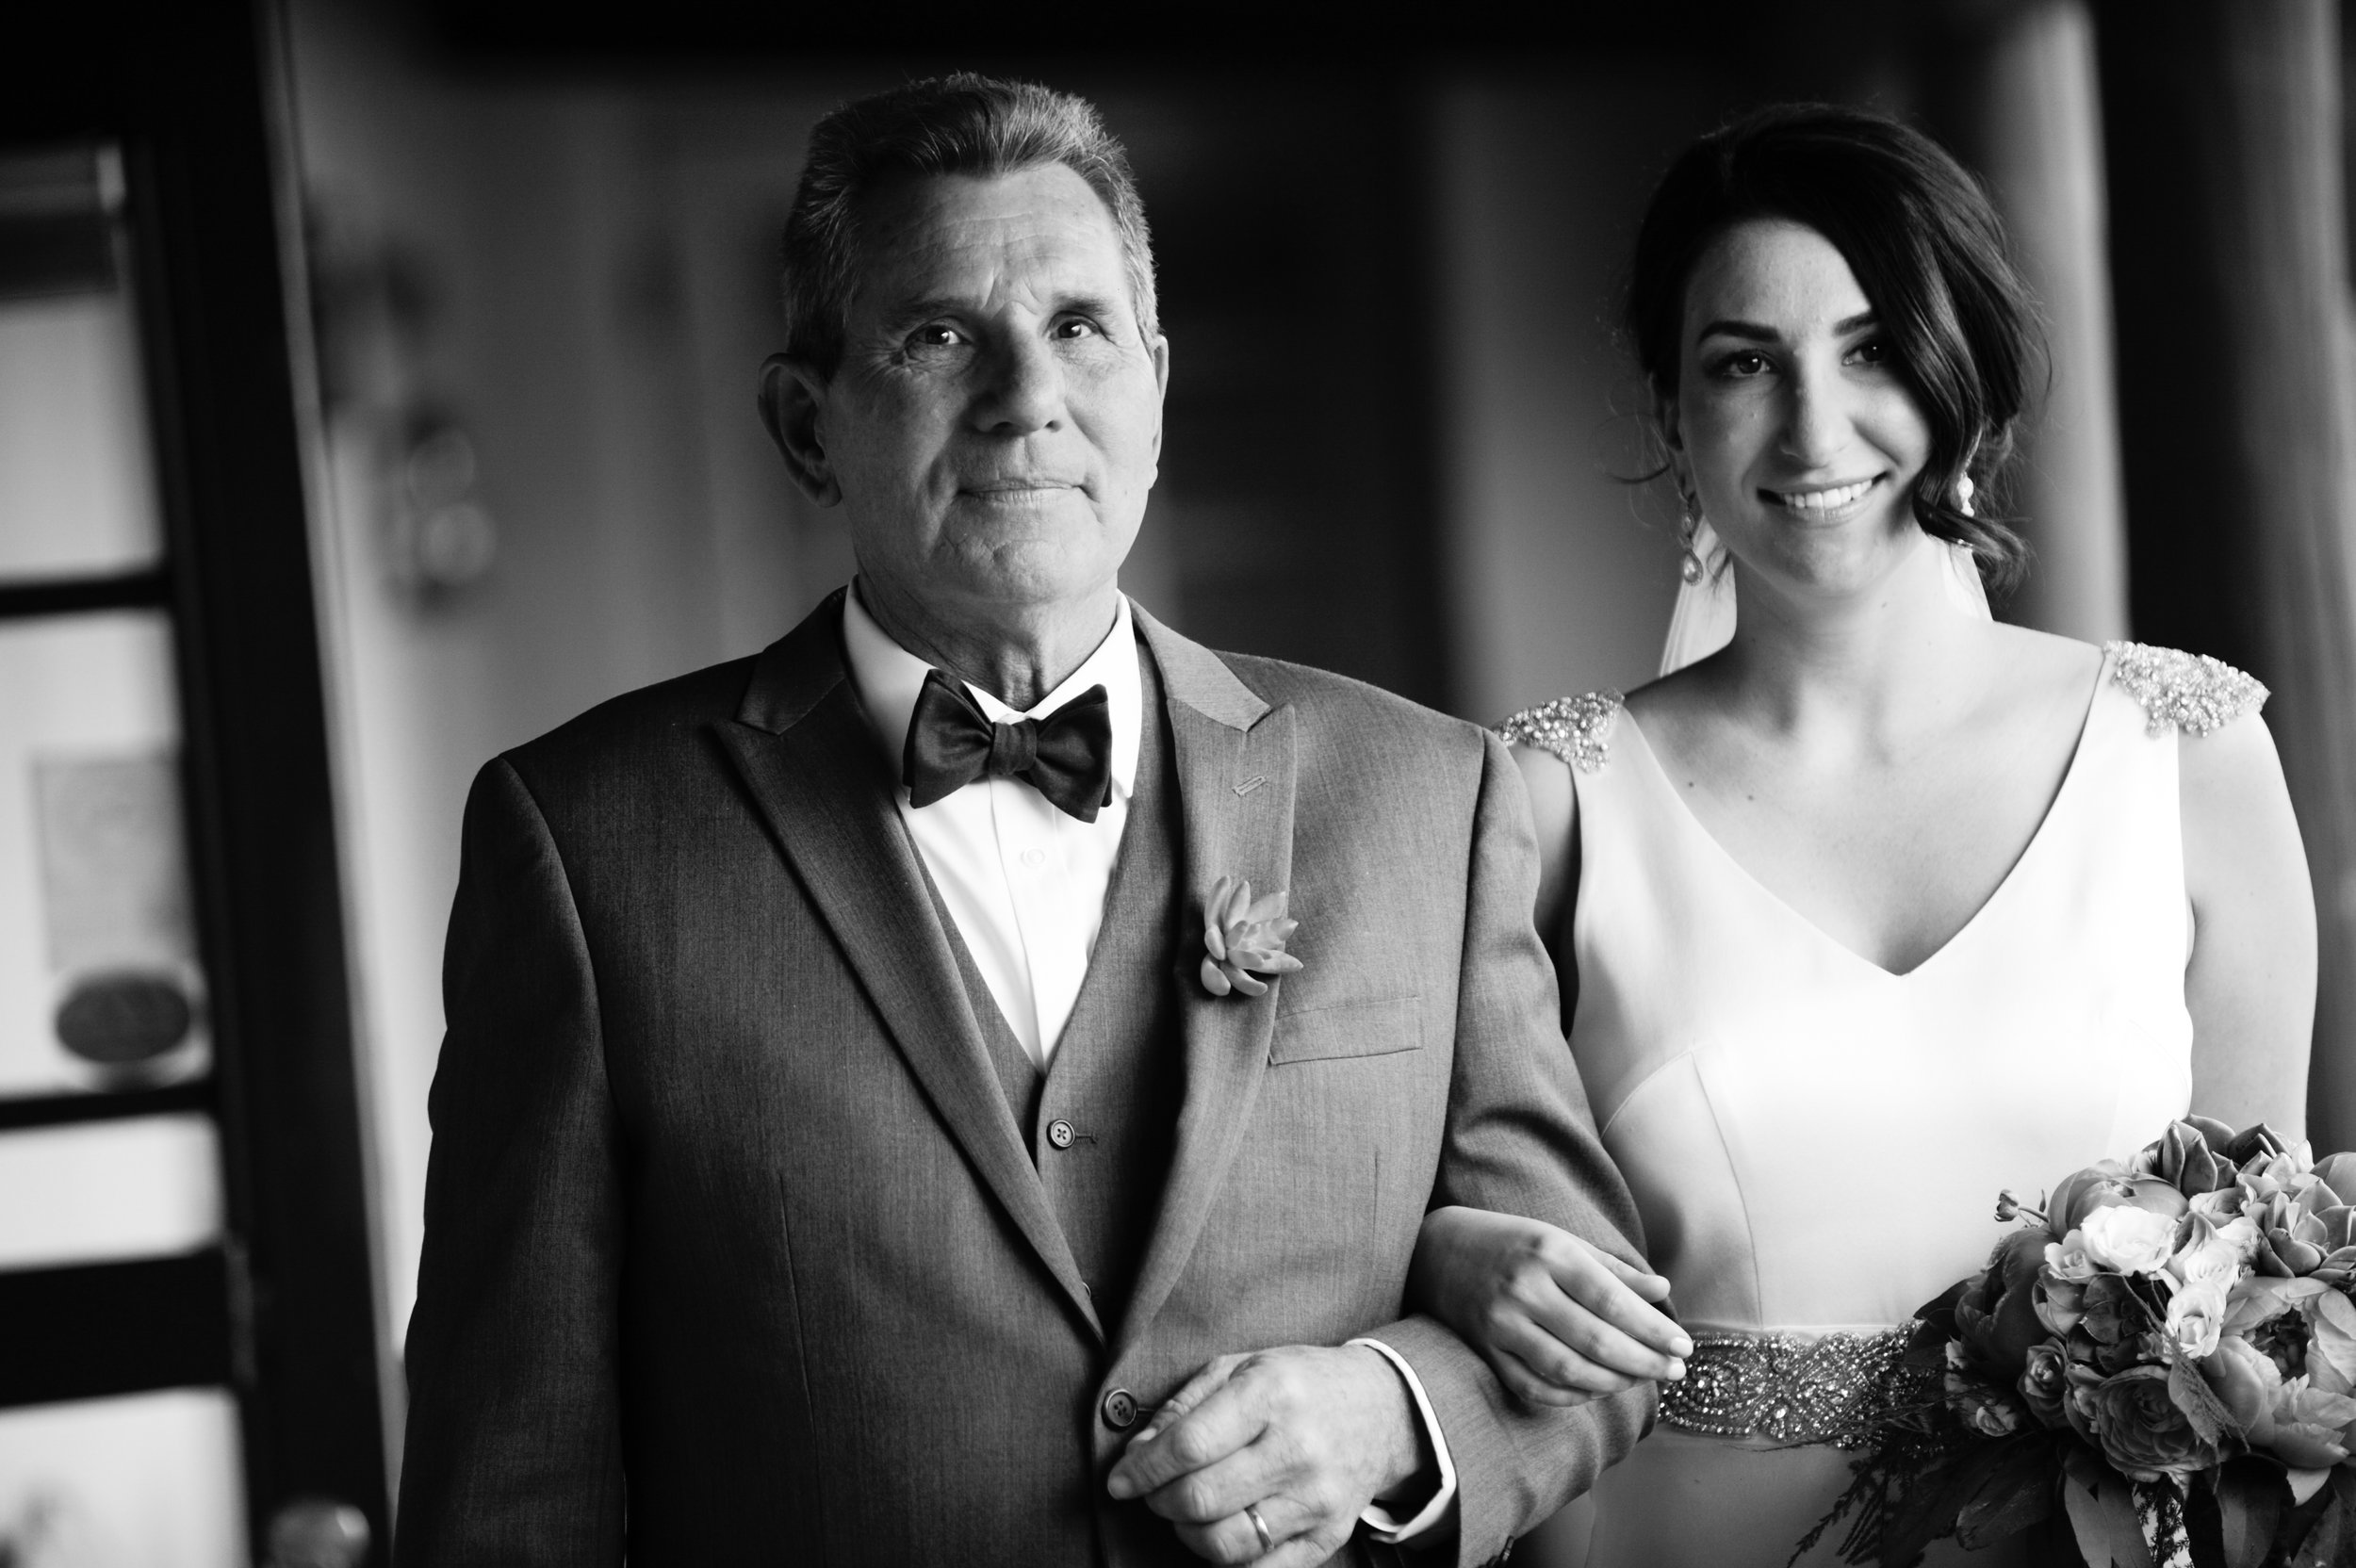 14 Bride and father bride and father walking down the aisle Mod Wed Photography Life Design Events.jpg